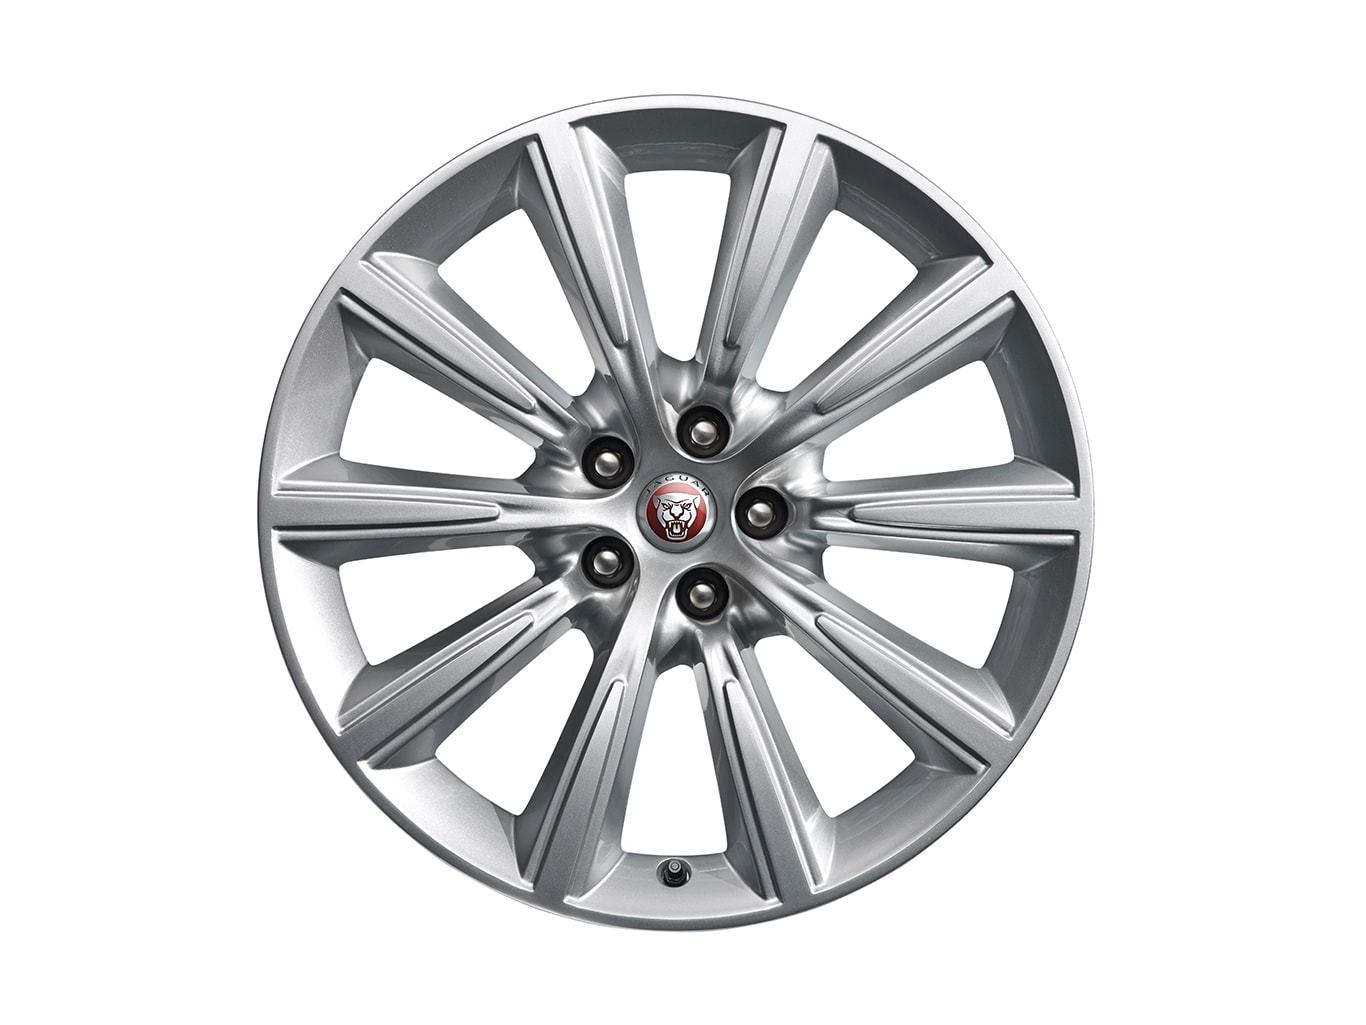 "Alloy Wheel - 19"" Style 1026, 10 spoke, Rear"